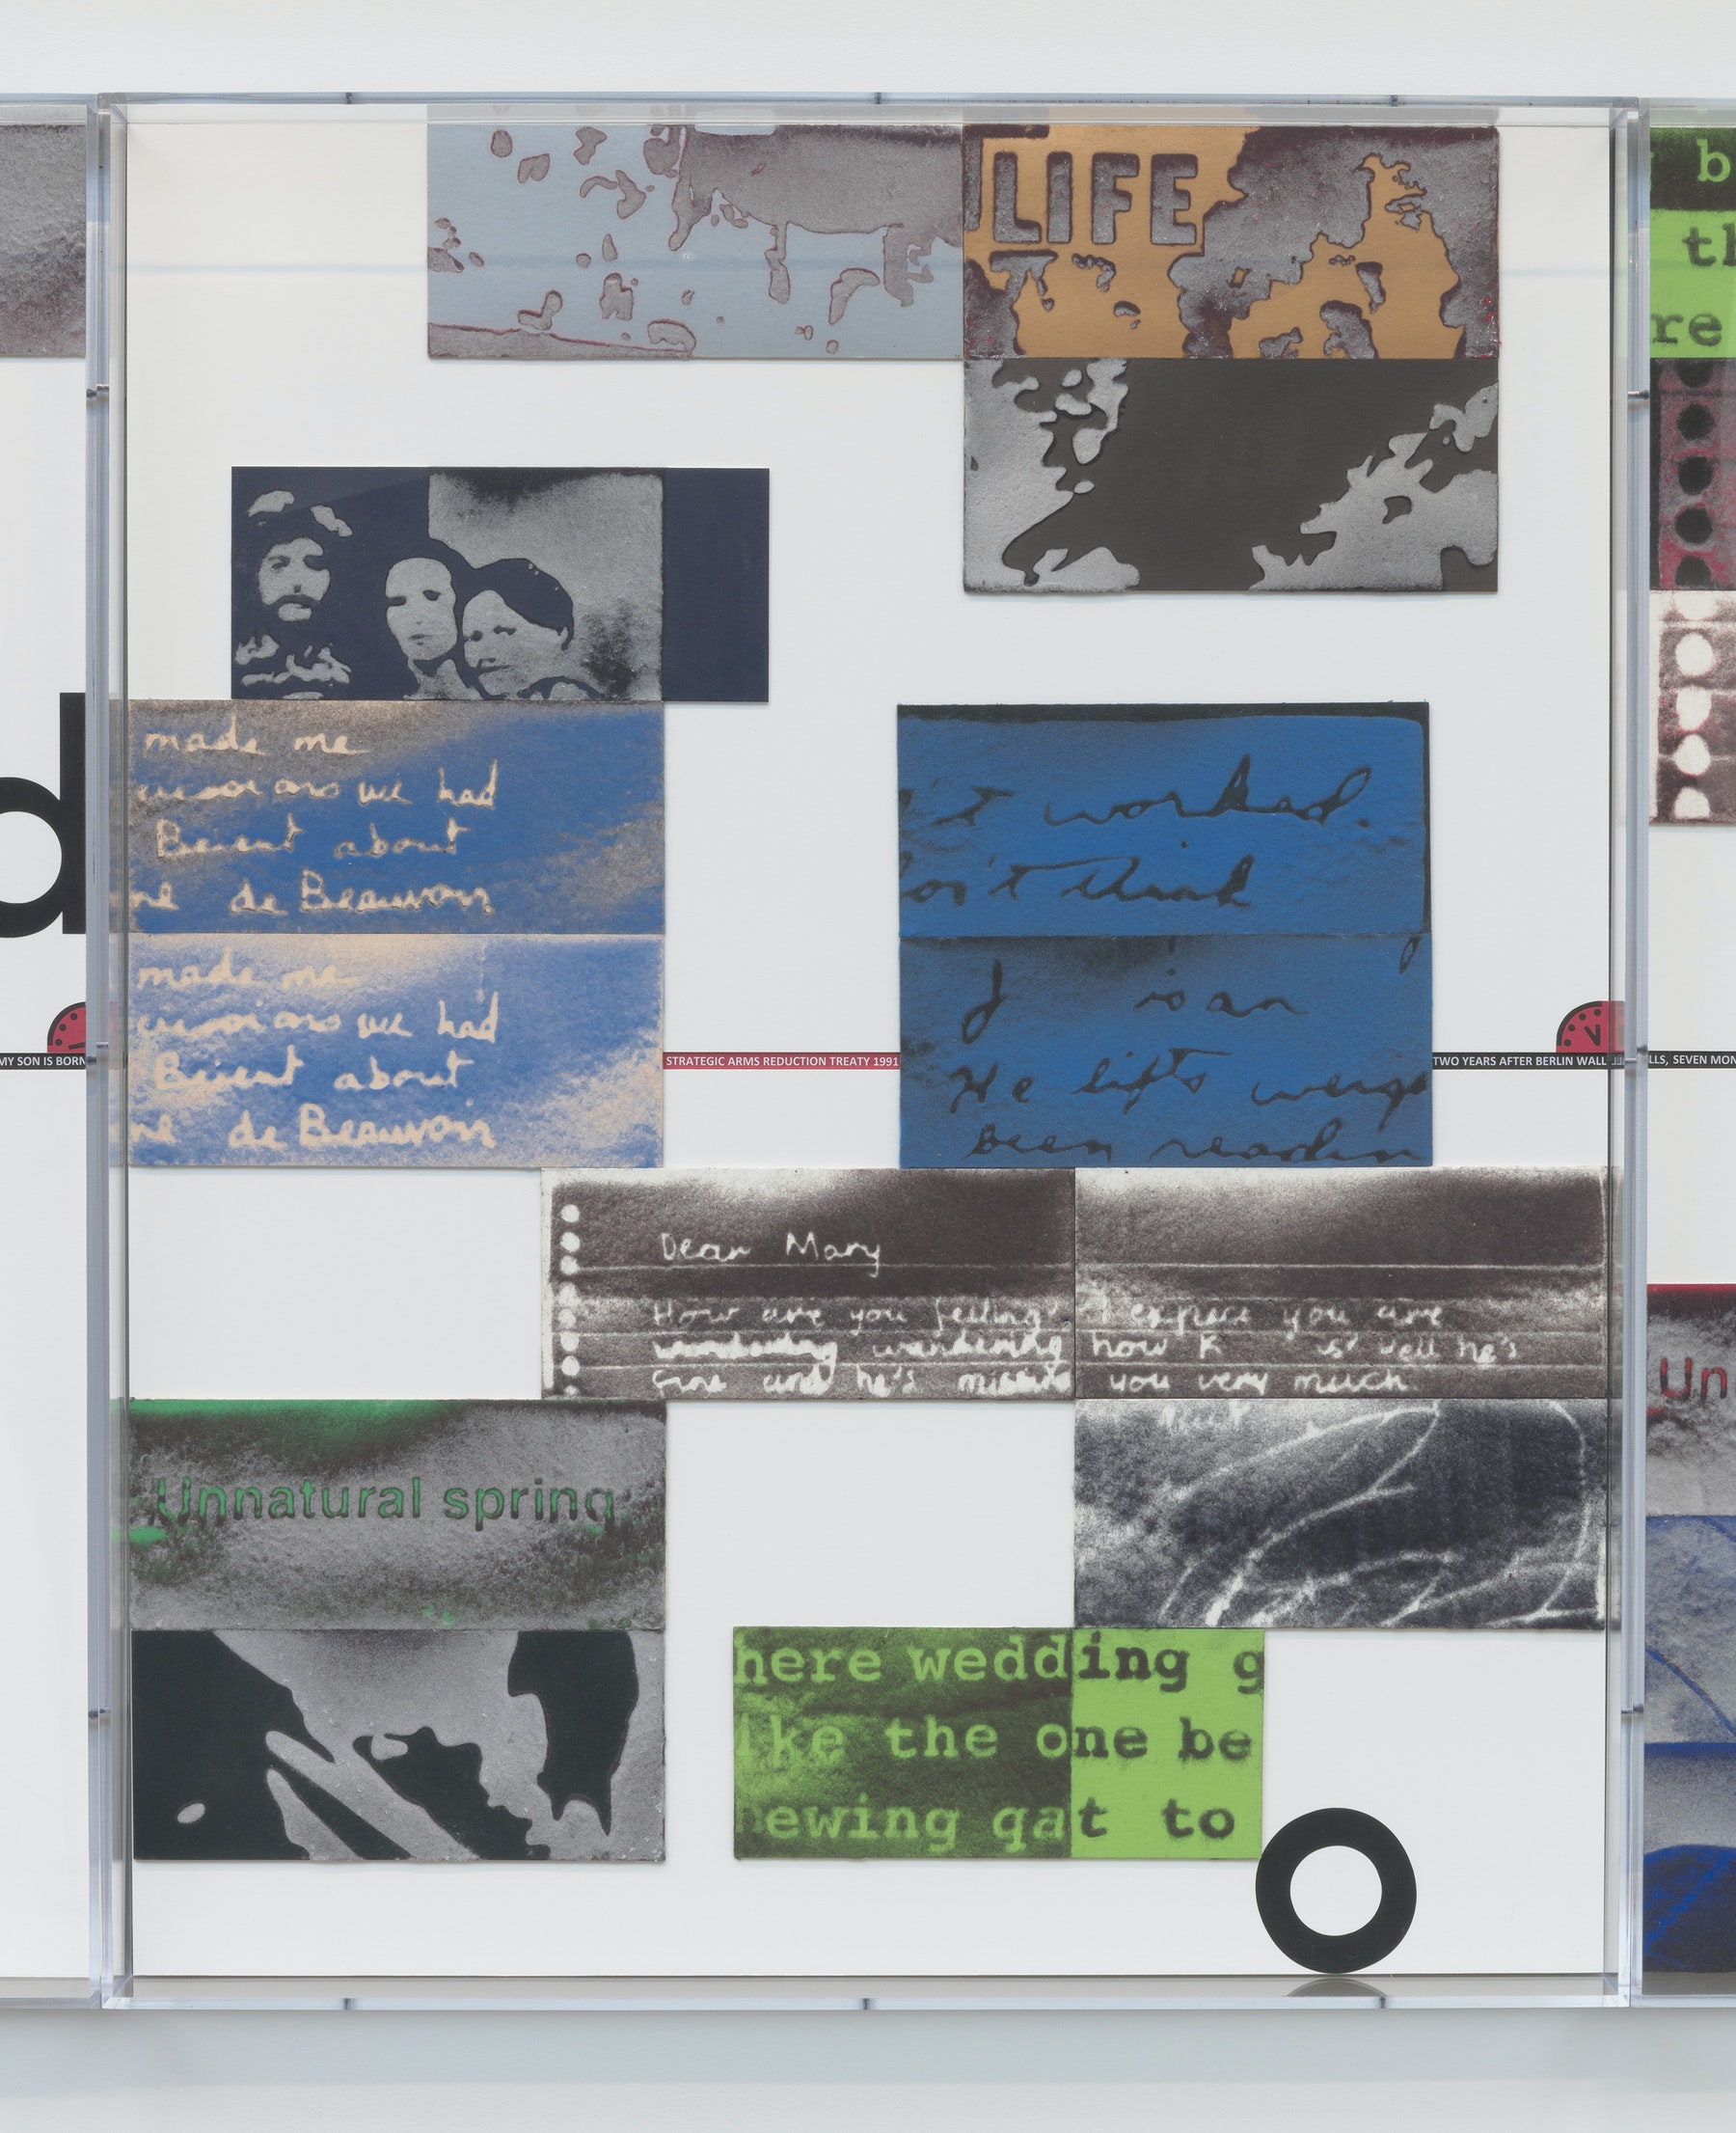 """Mary Kelly """"World on Fire Timeline,"""" 2020 Compressed lint, archival mount board, paper, ink, acrylic box frames 40.5 x 32.5 x 3.25"""" [HxWxD] (102.87 x 82.55 x 8.25 cm) 6 parts, 40.5 x 195 x 3.25"""" [HxWxD] (102.87 x 495.3 x 8.25 cm) overall Inventory #KEL164 Photo credit: Robert Wedemeyer"""